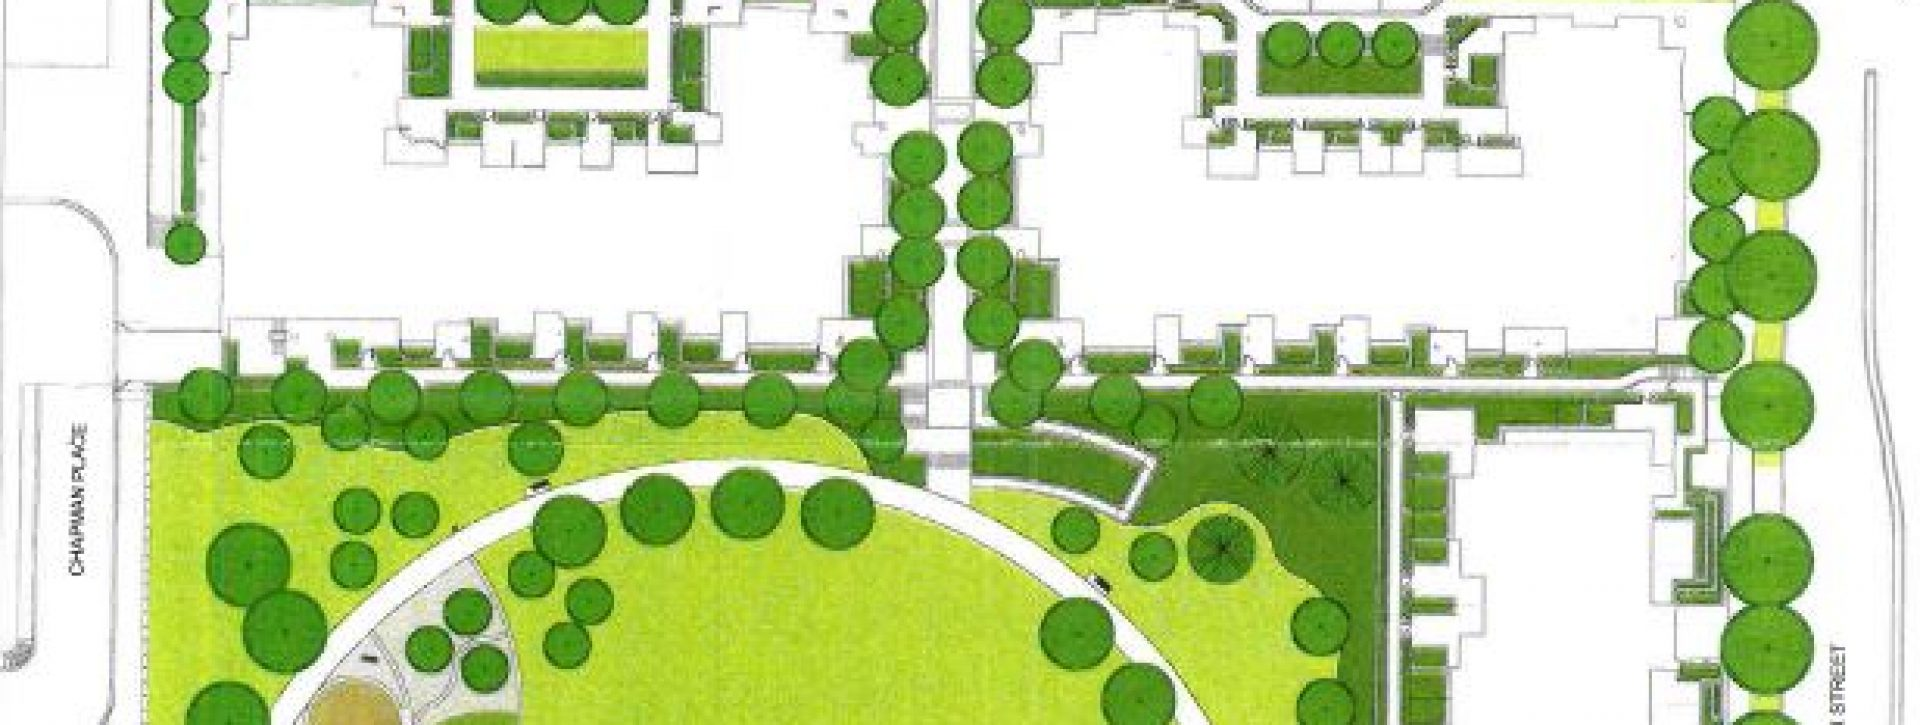 Central-Green-Site-Plan